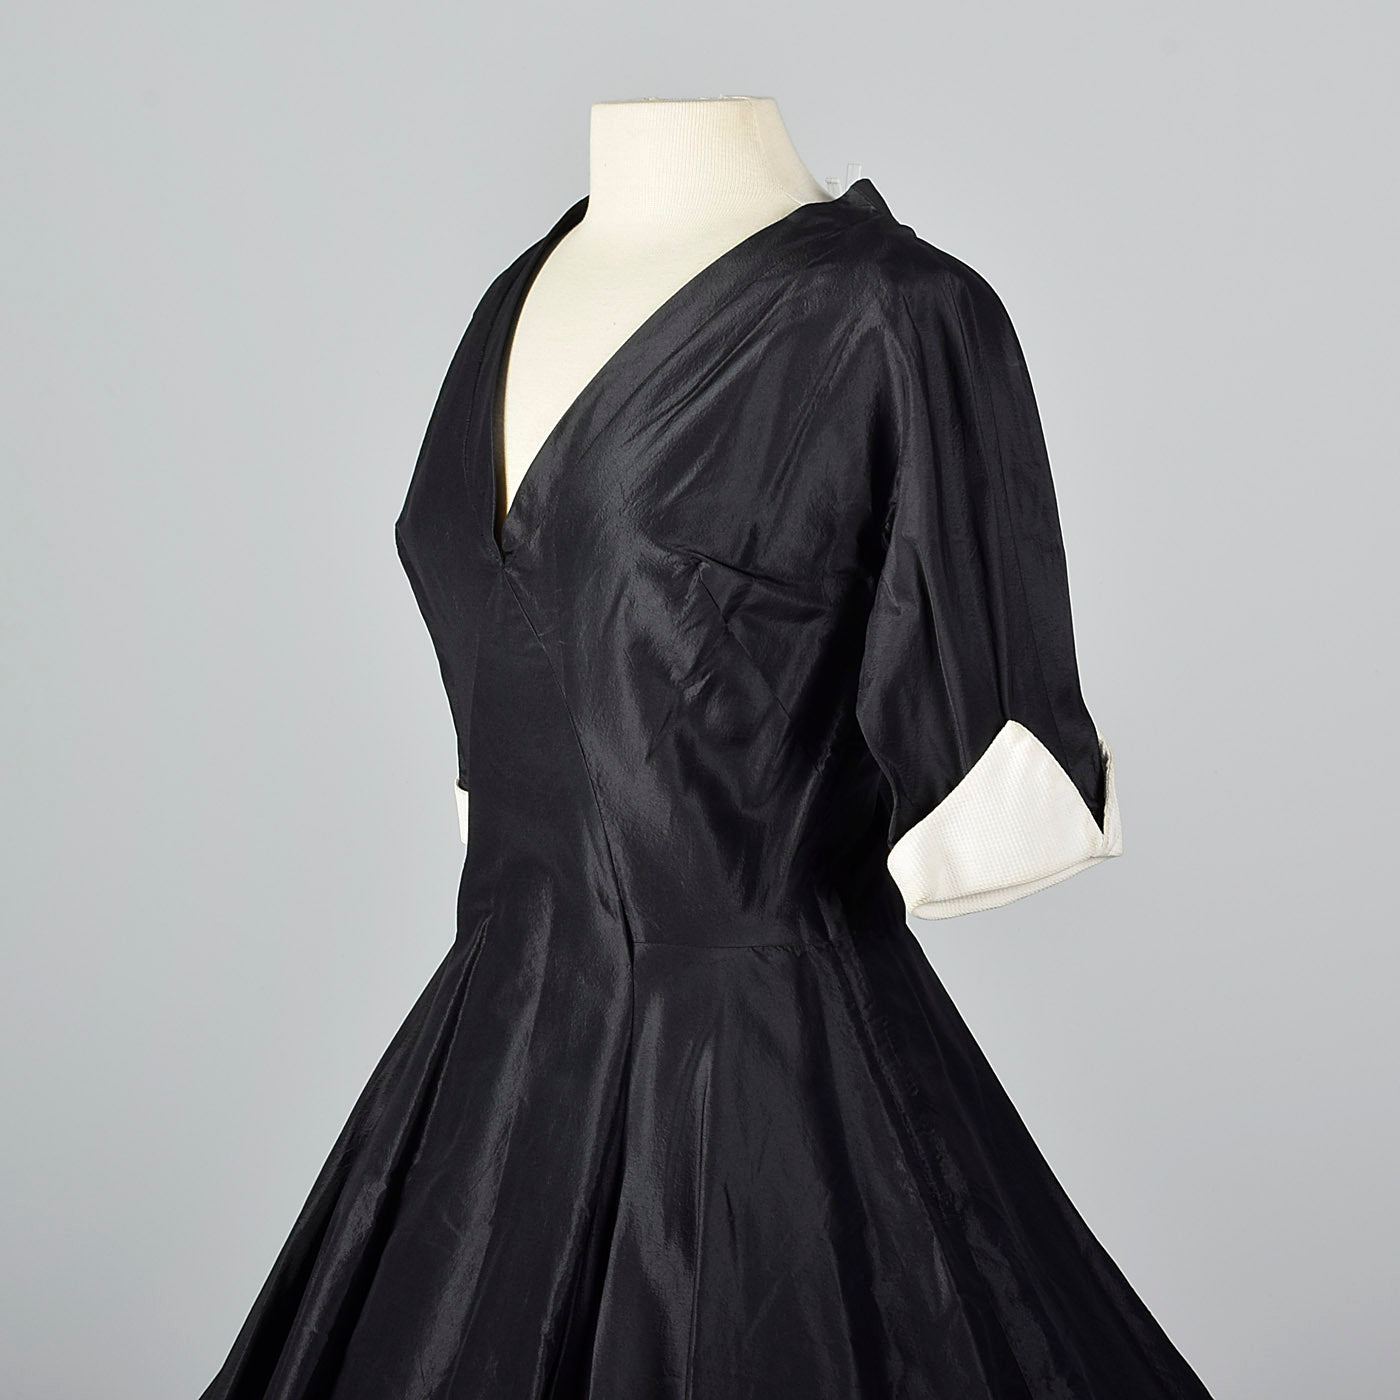 1950s Black Taffeta Party Dress with White Cuffs